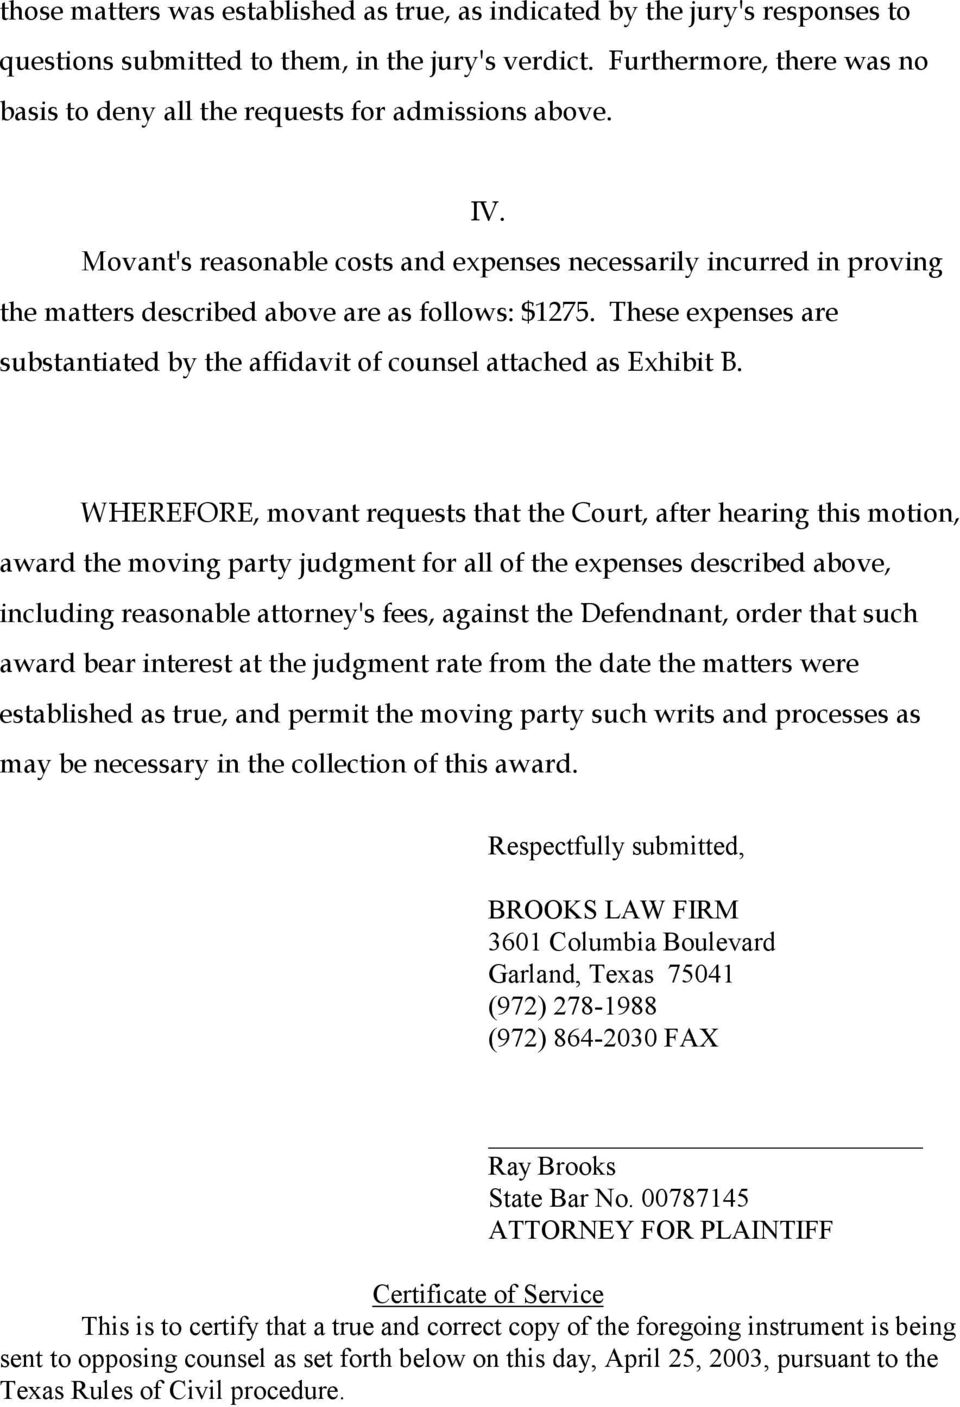 Movant's reasonable costs and expenses necessarily incurred in proving the matters described above are as follows: $1275.